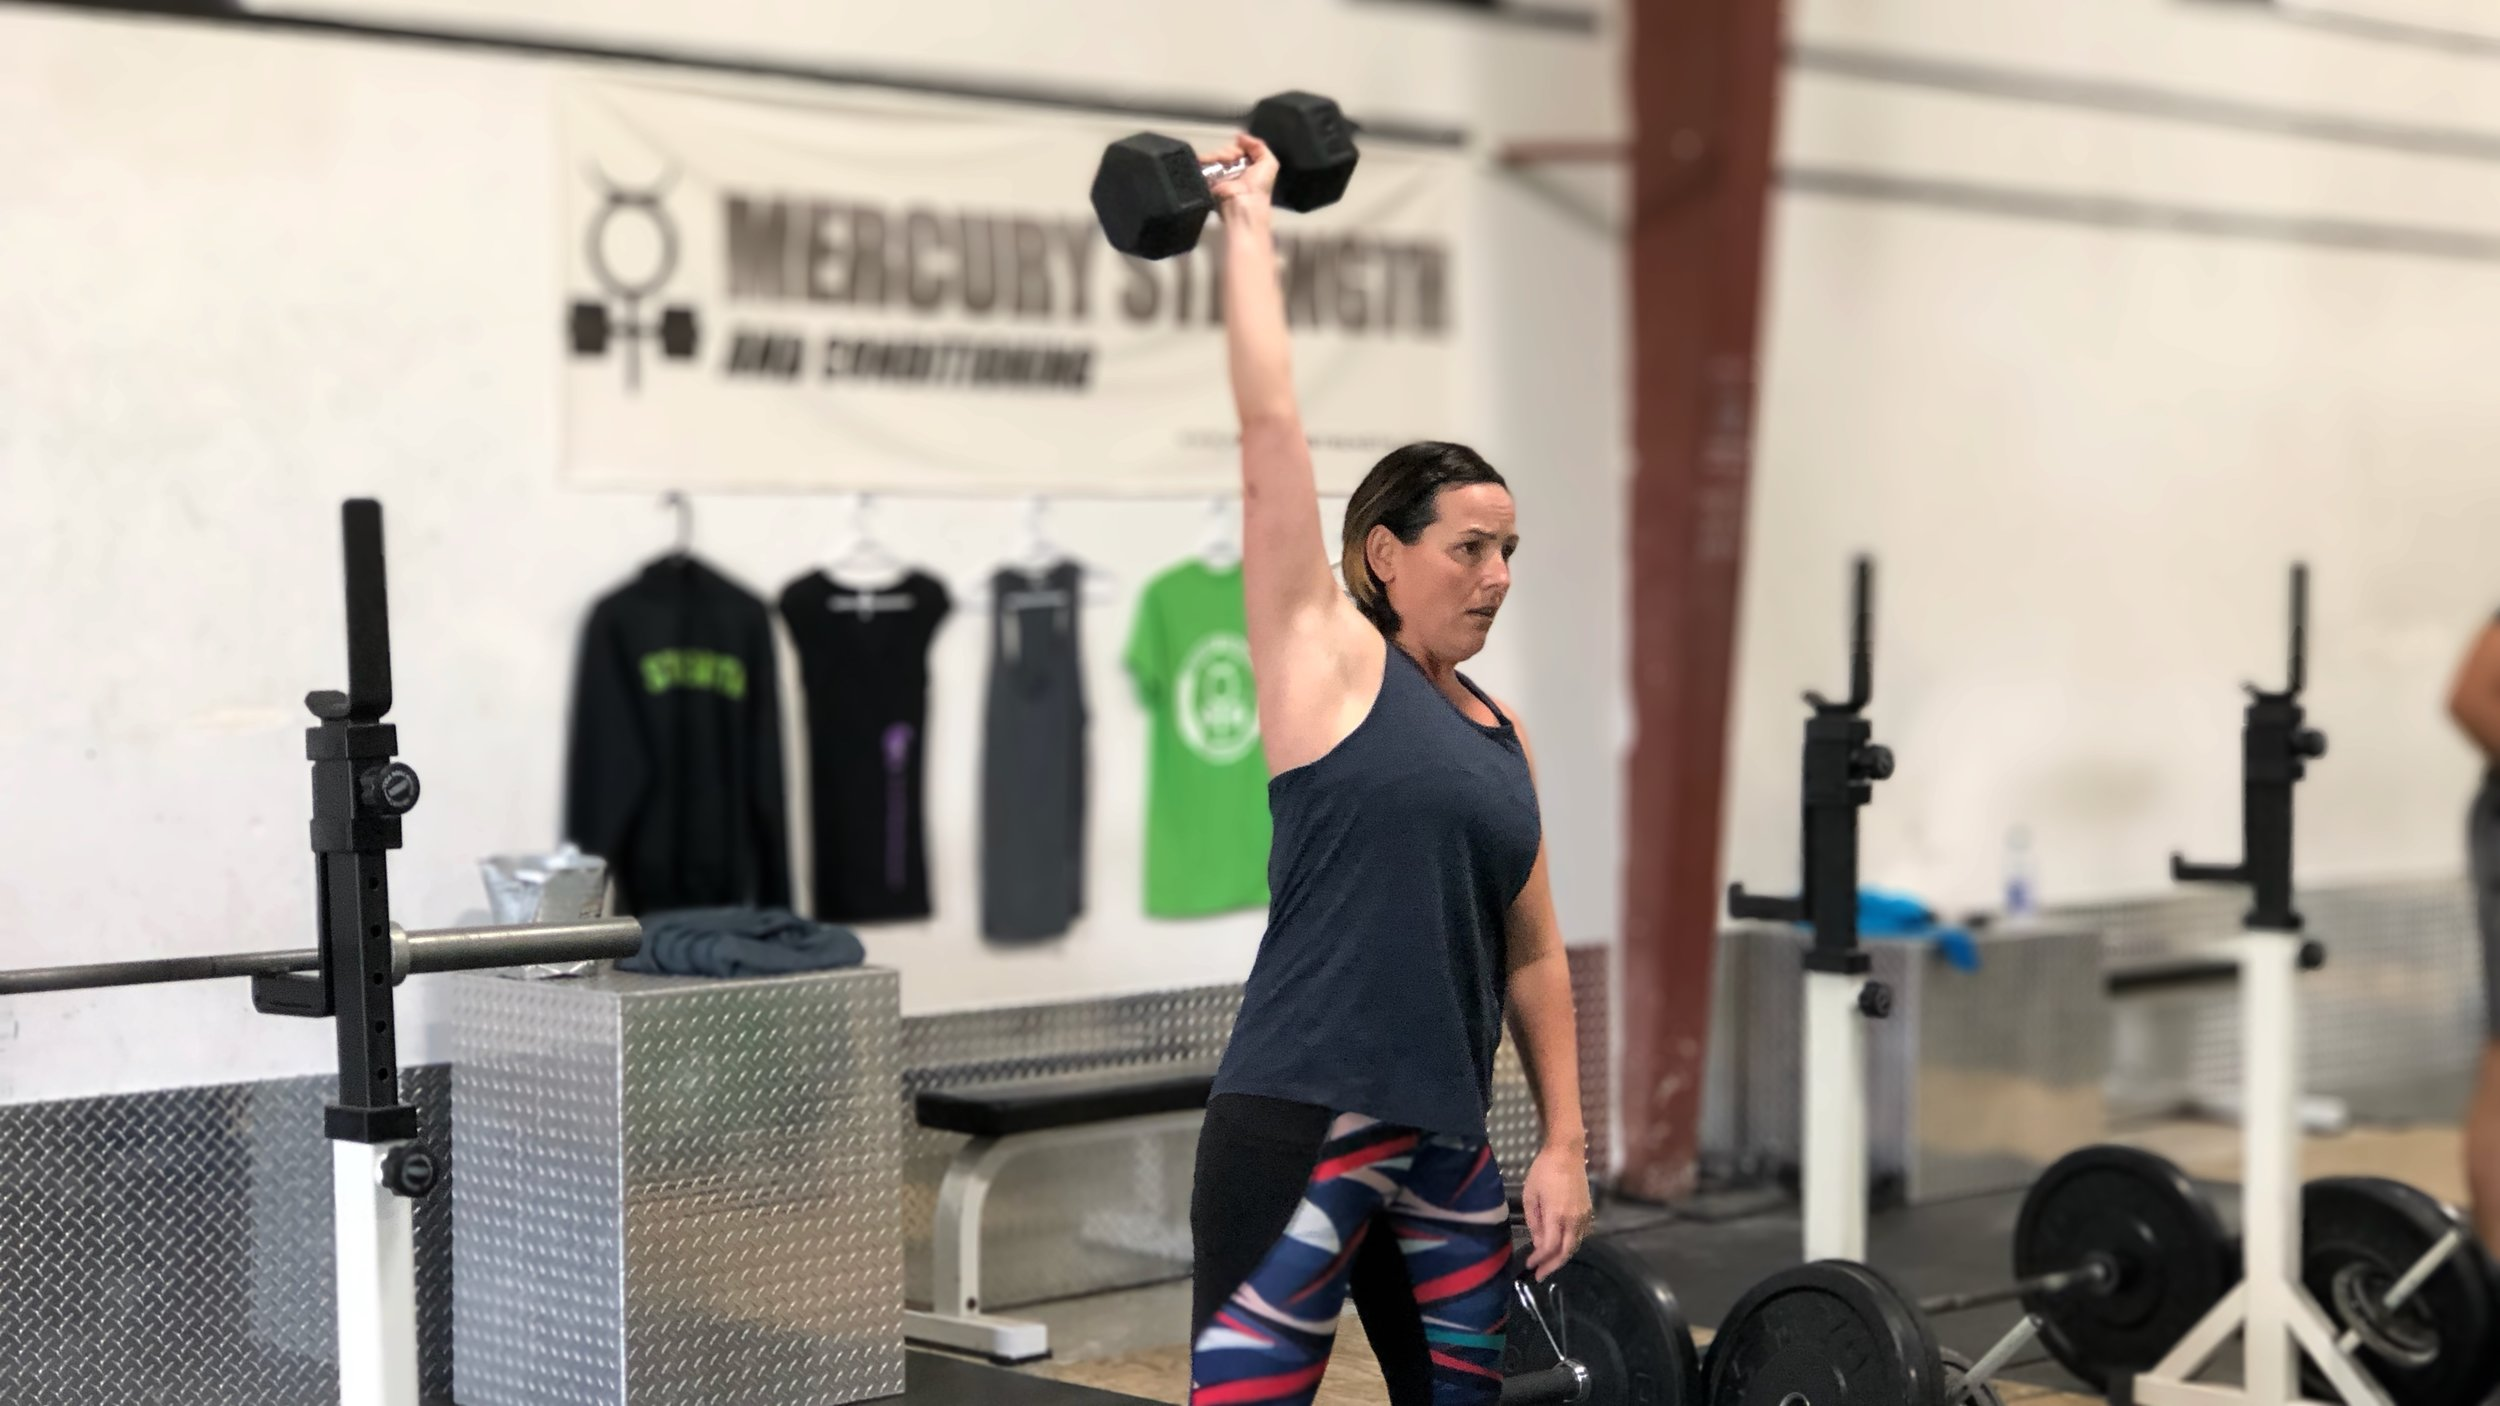 Lindsey with some DB hang power snatches